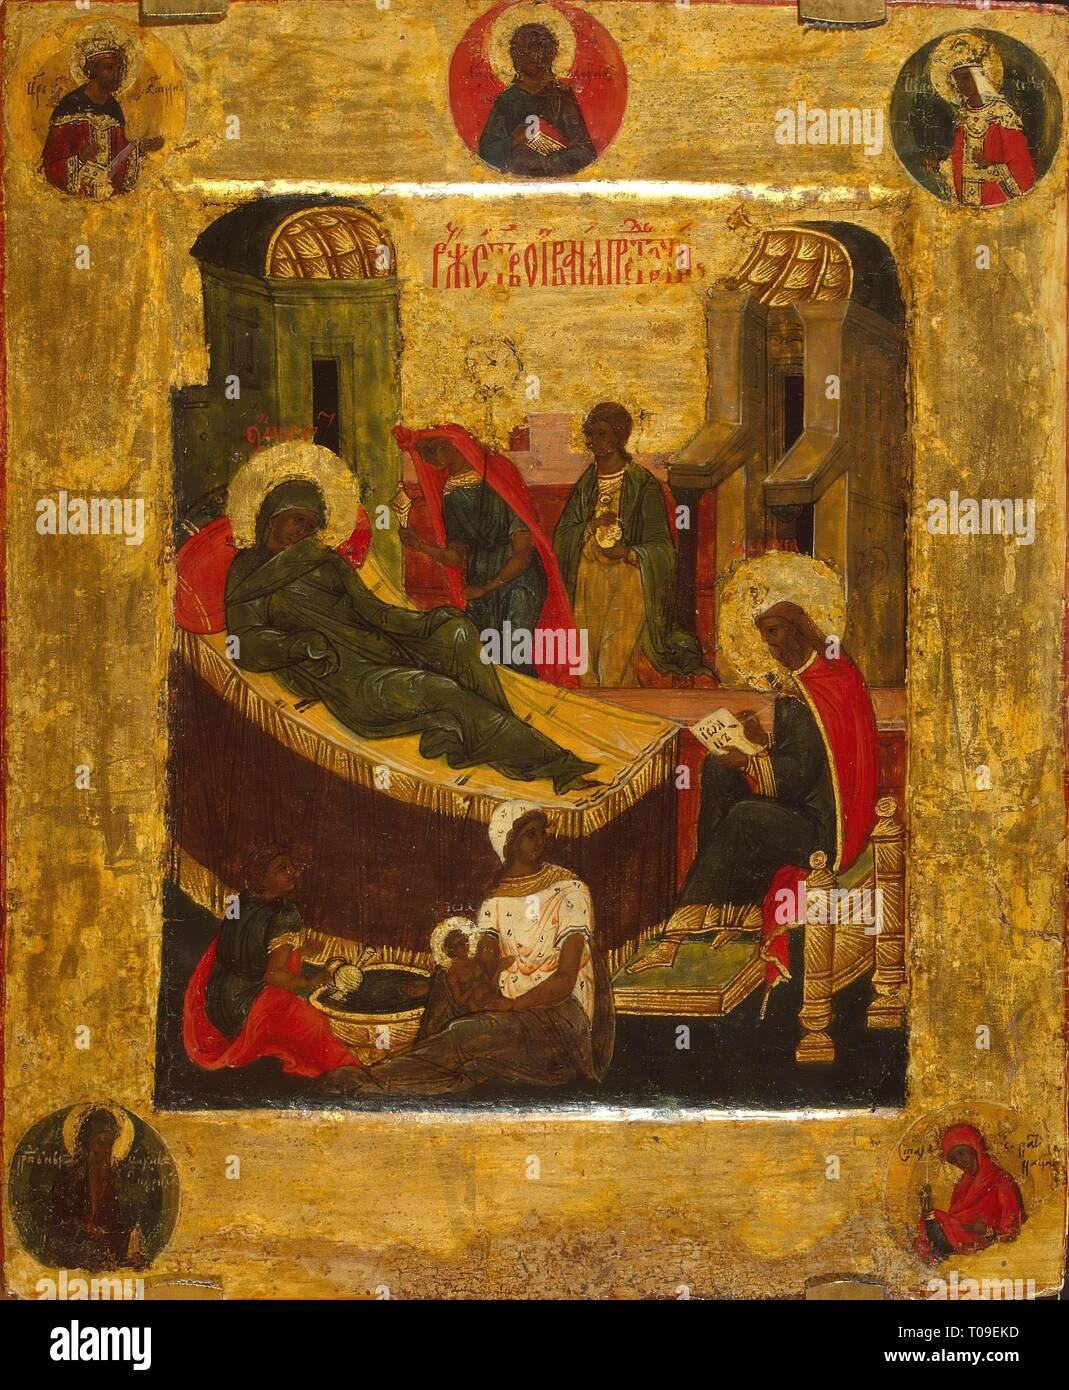 'Icon: Birth of St John the Baptist'. Russia, 16th century. Dimensions: 31x25,5 cm. Museum: State Hermitage, St. Petersburg. Author: Russian icon. - Stock Image